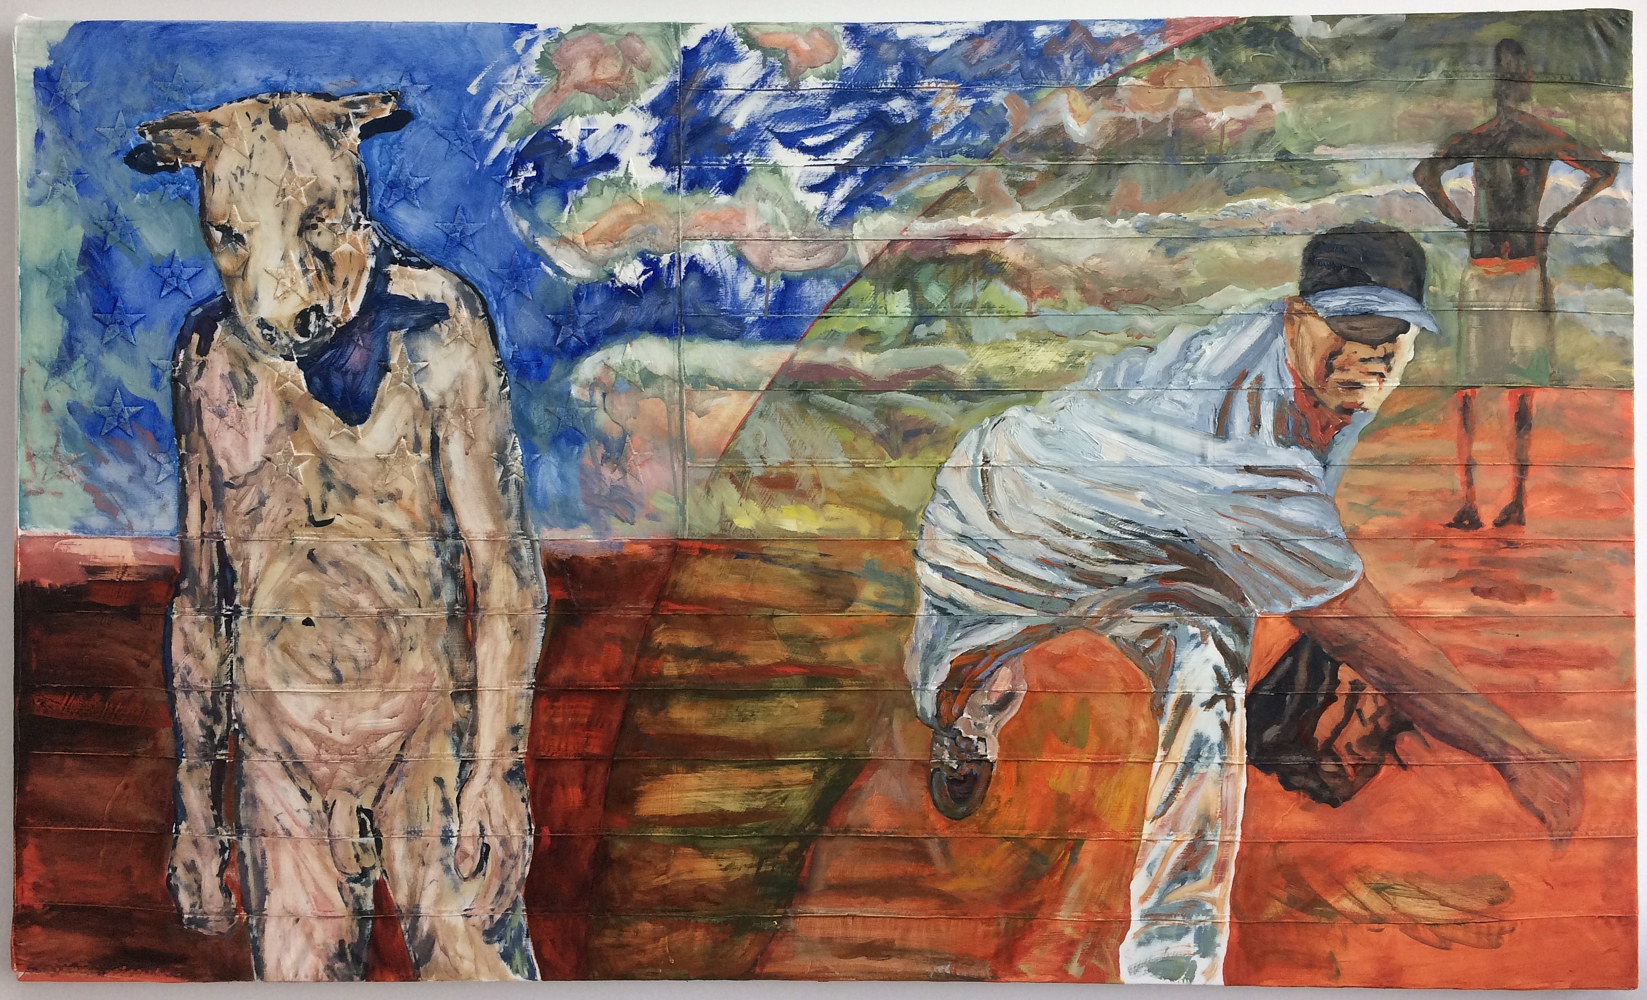 Oil painting Strikeout, 3 x 5, Oil on sewn and embroidered canvas by Edward Miller